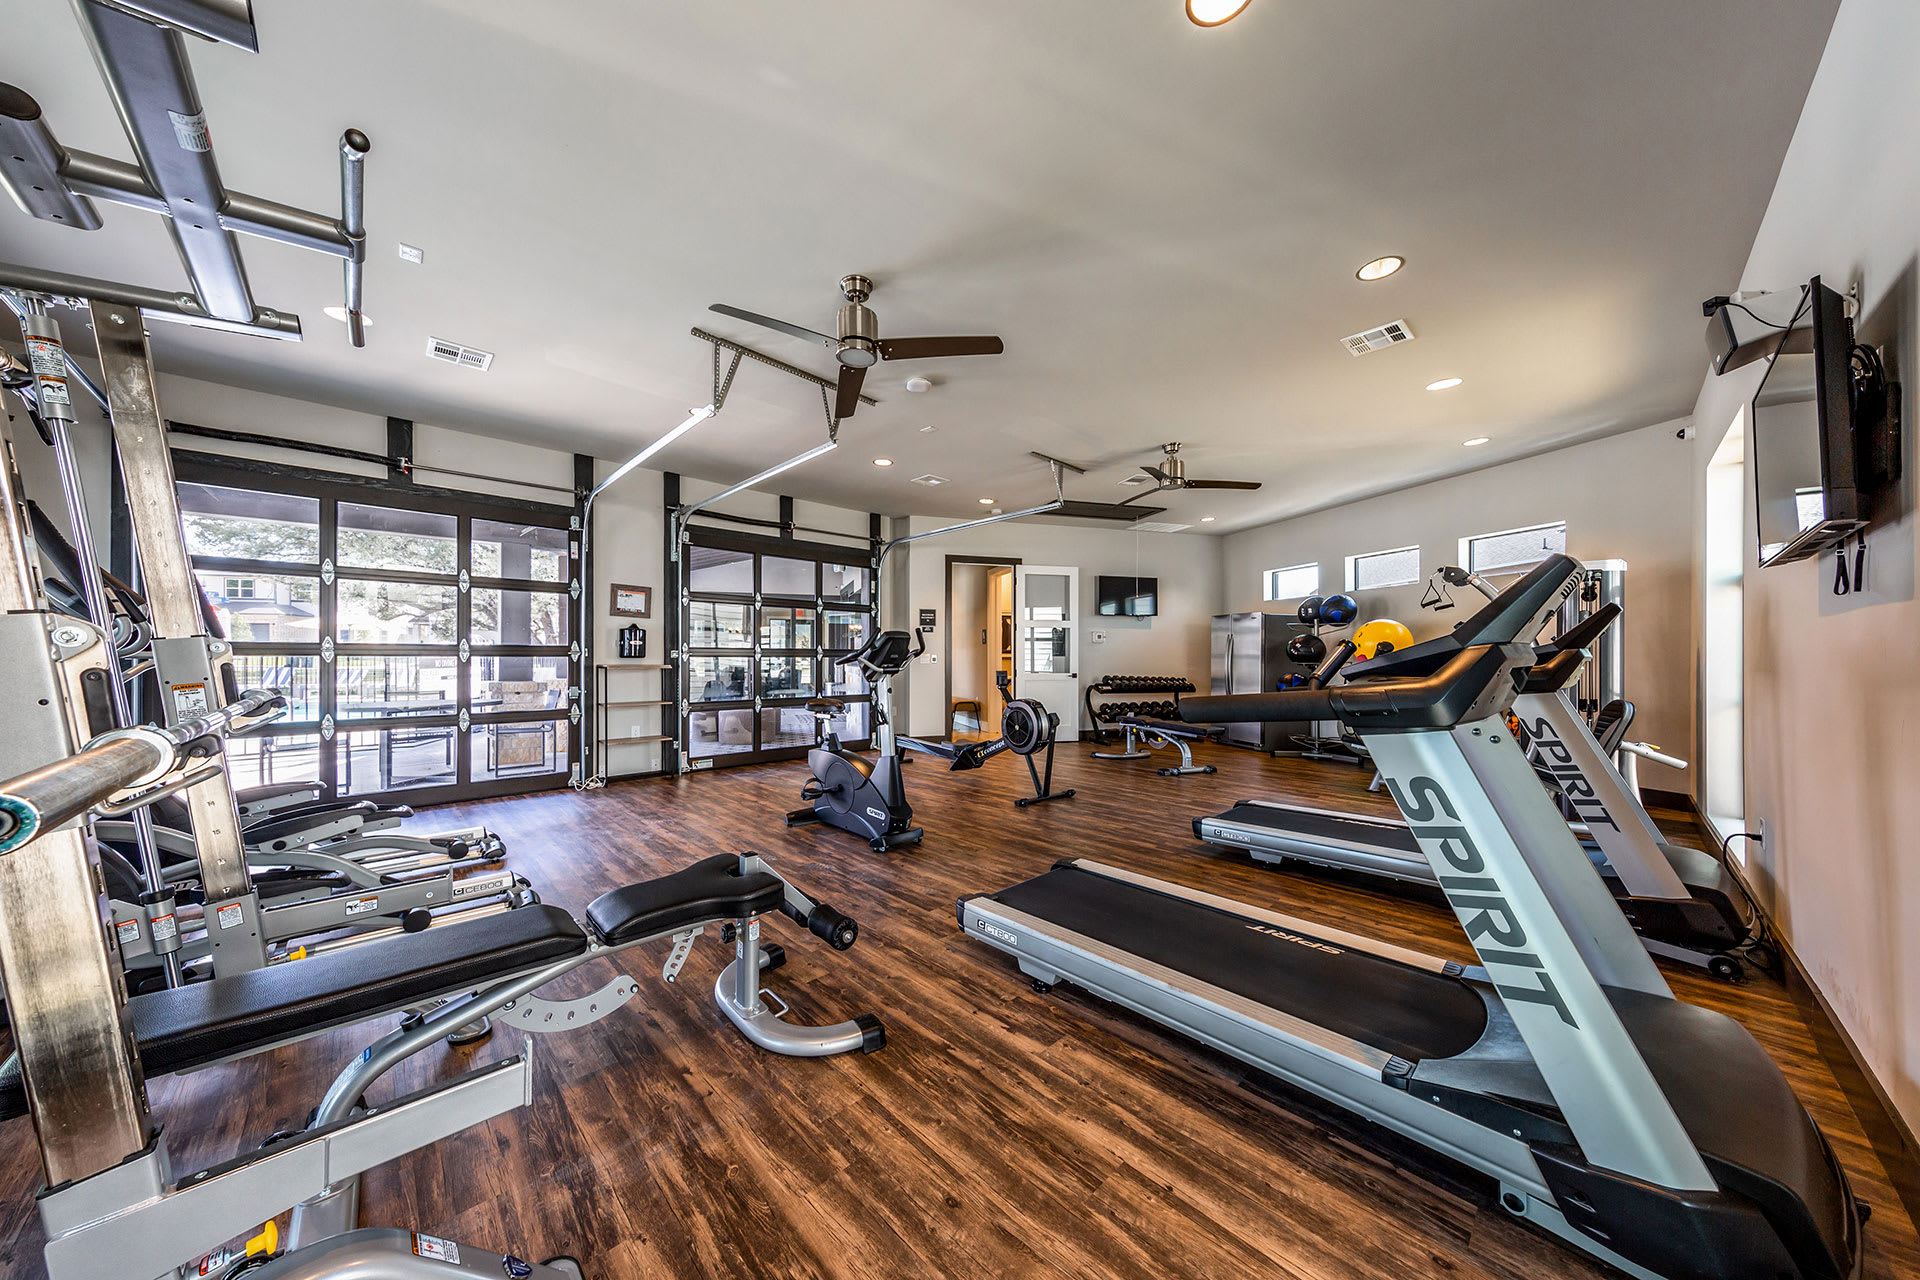 Rivers Edge Apartments Fully-Equipped Fitness Center